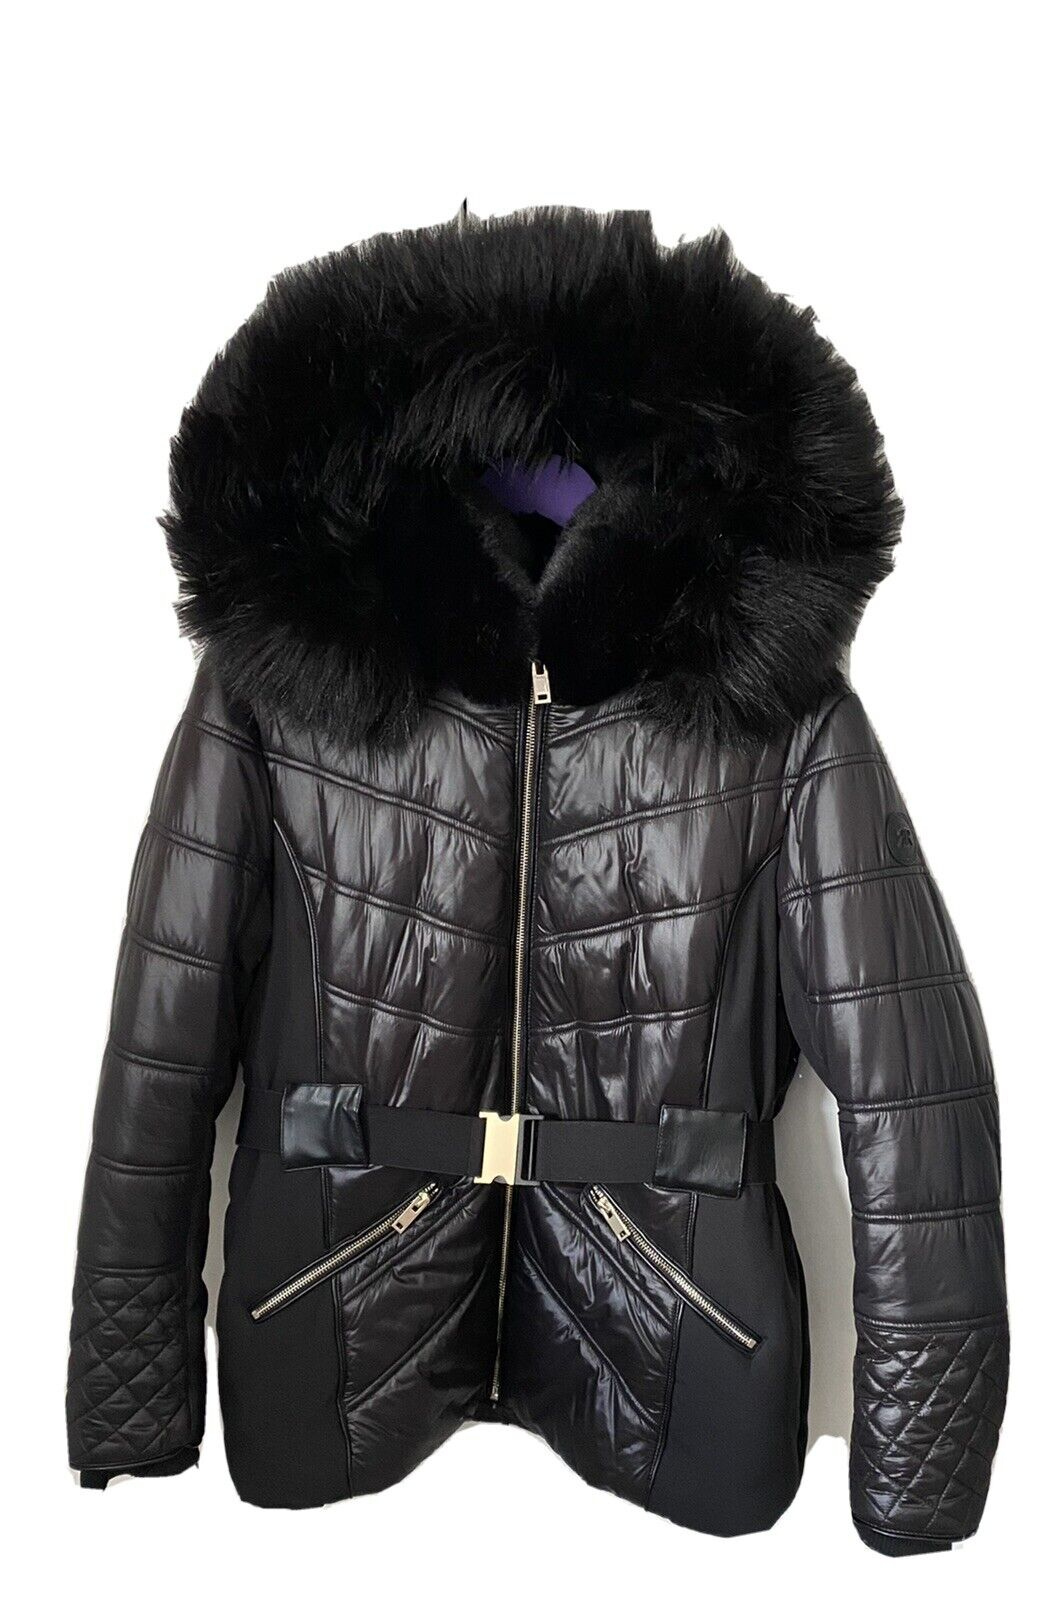 Ladies Plus River Island Black Quilted Padded Puffer Jacket Coat Belted